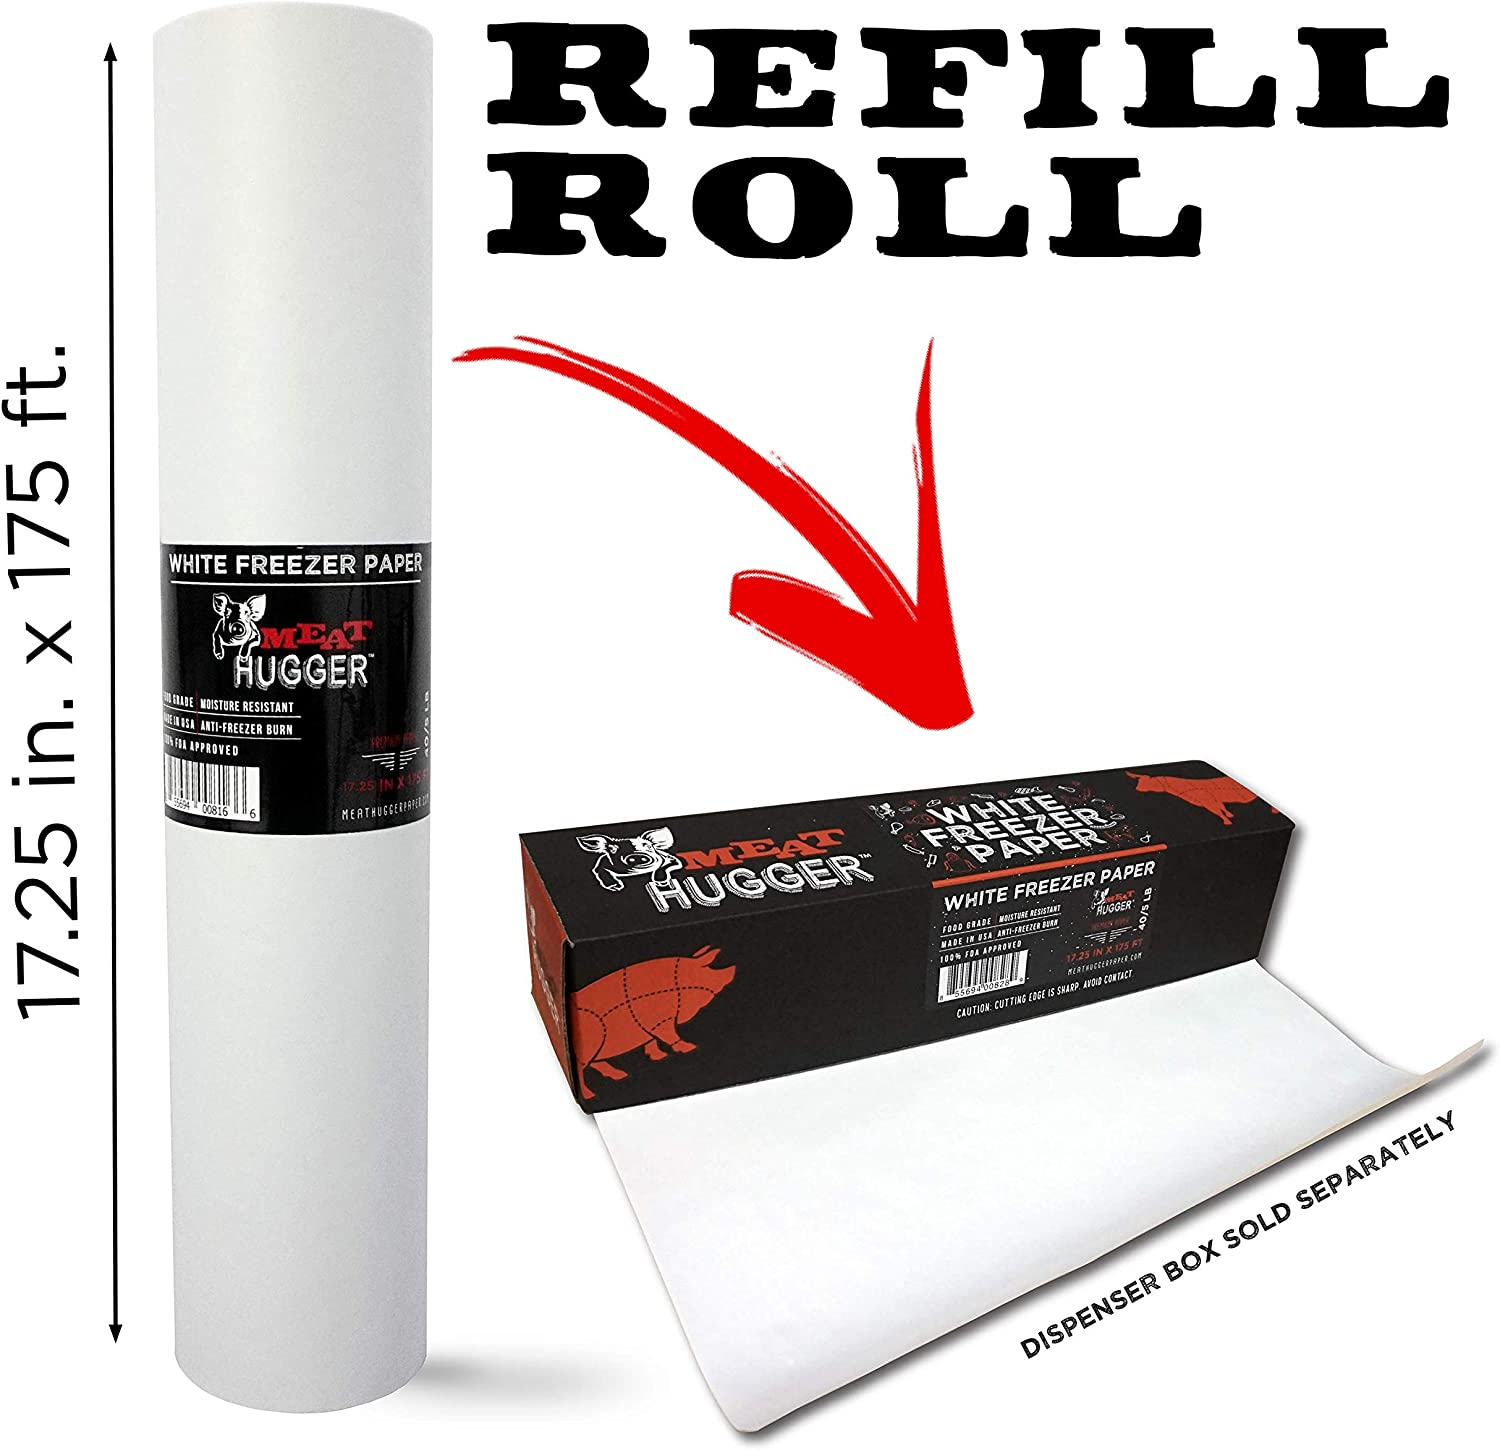 White Freezer Paper Refill Roll For Dispenser Box (17.25 Inch x 175 Feet) - Poly Coated Moisture Resistant Wrap with Matte Side for Freezing Meats, Protects Against Freezer Burn